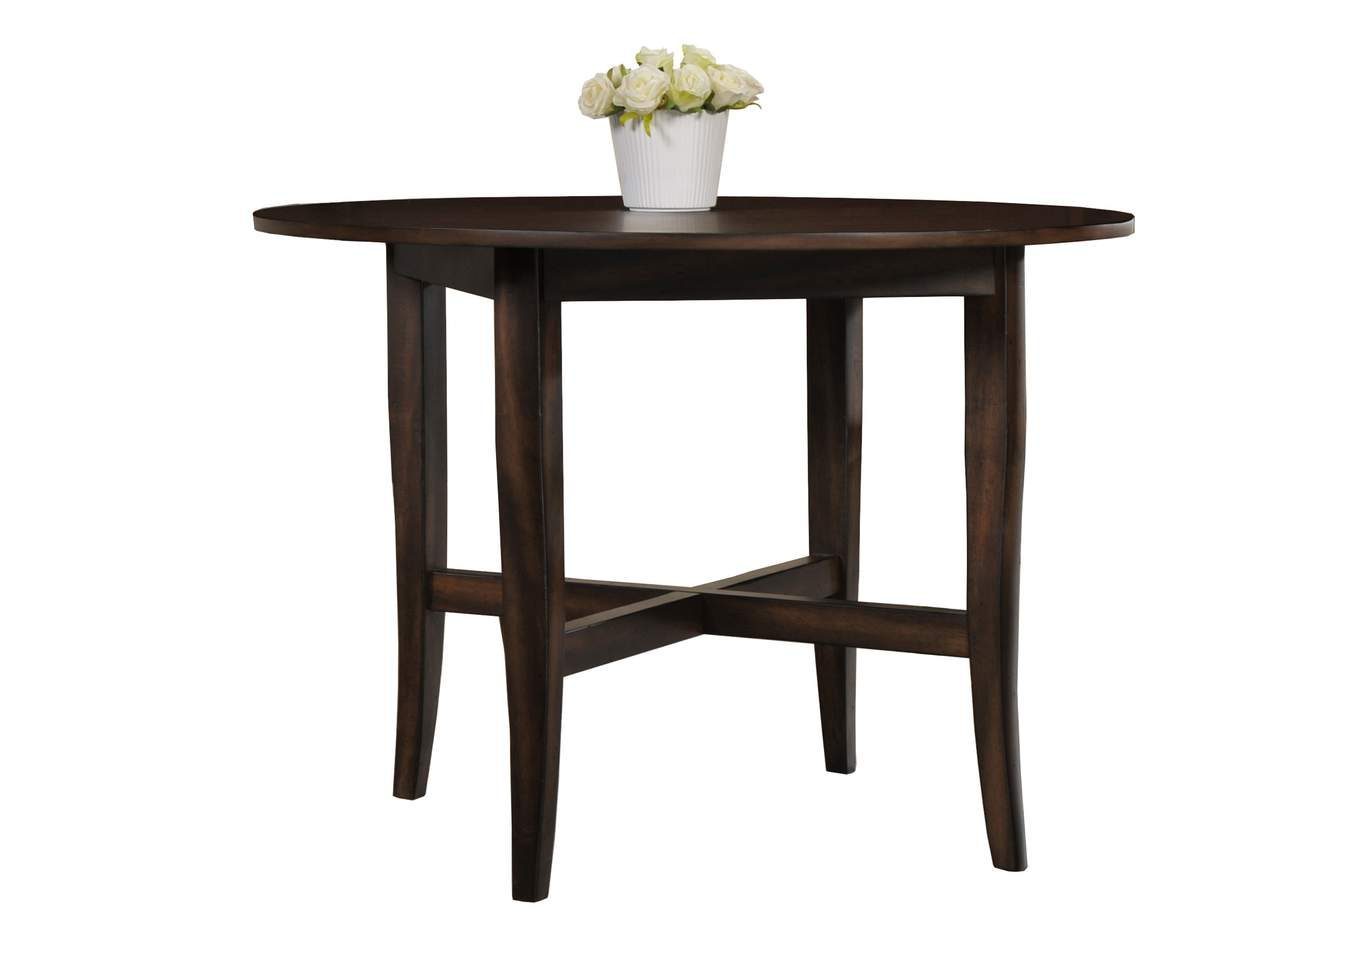 Farris Round Dining Table W/4 Side Chairs,Crown Mark